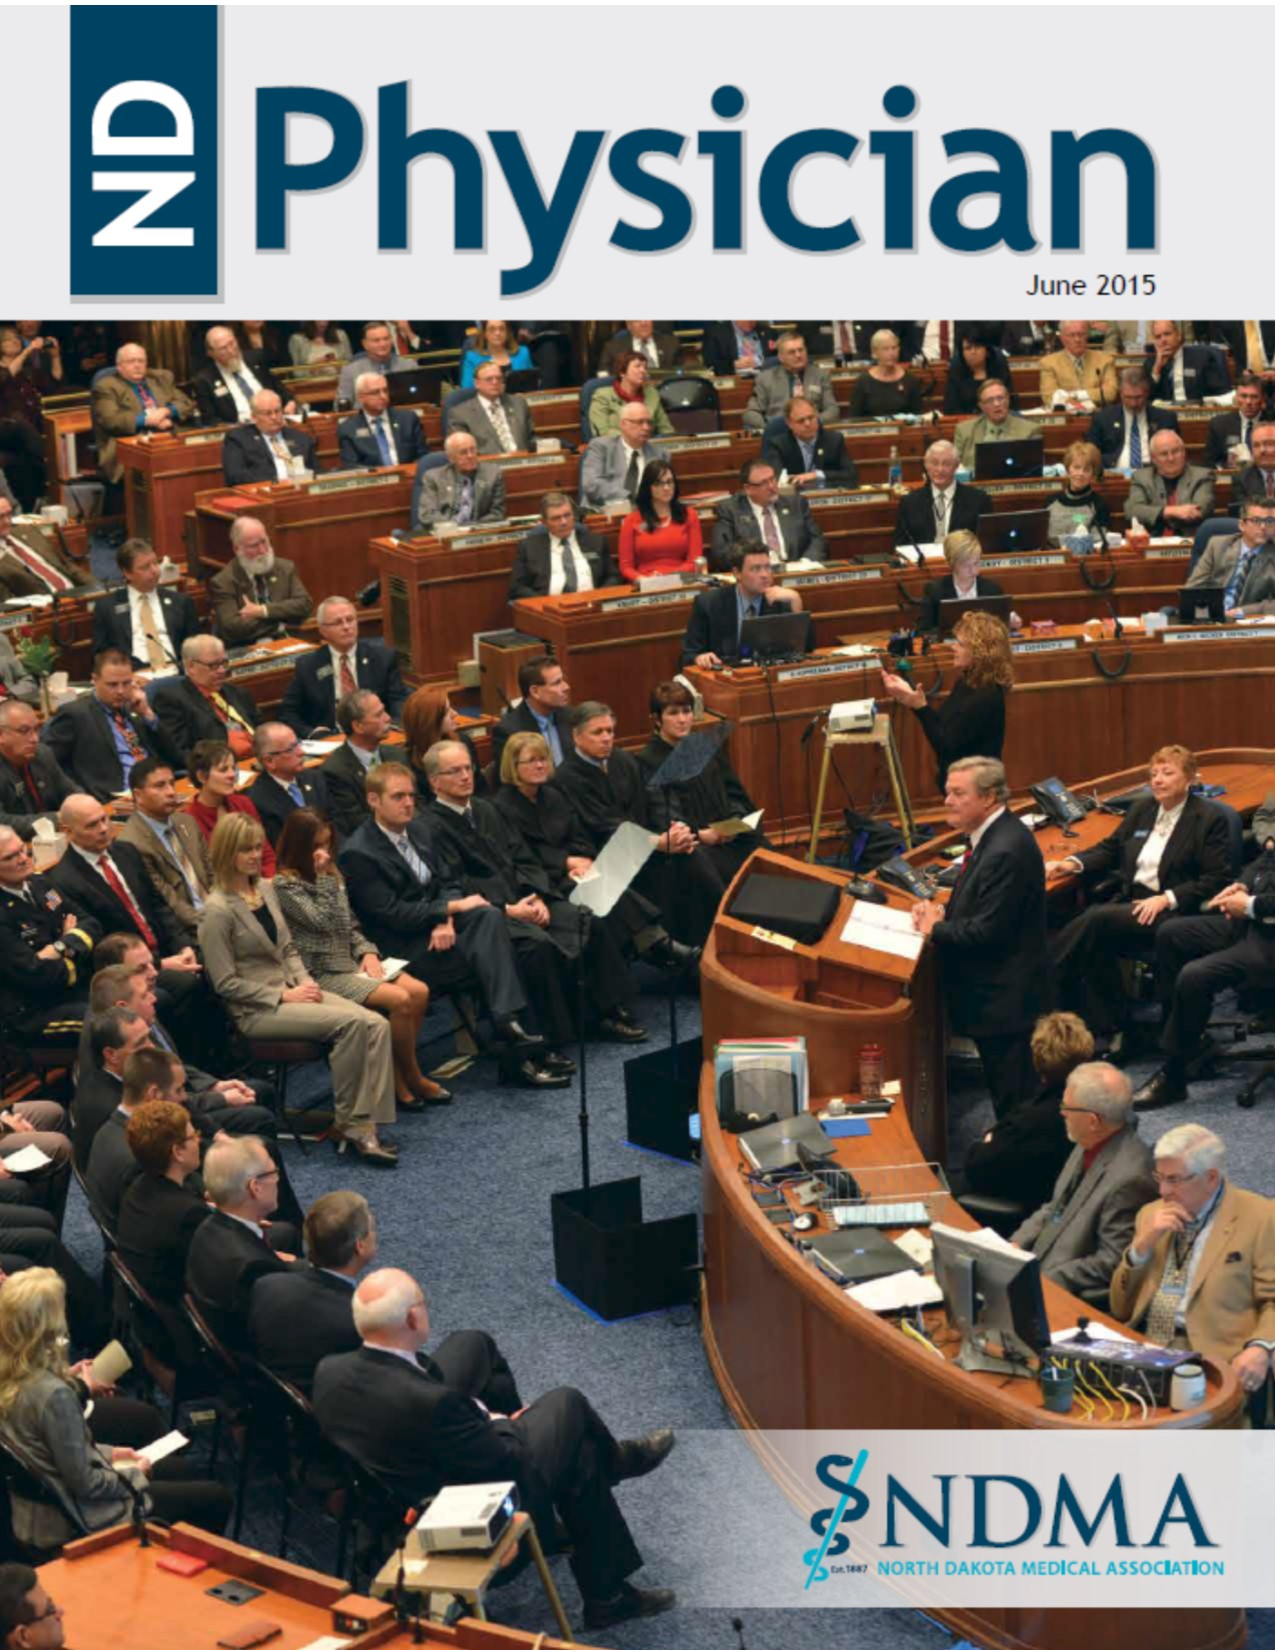 ND Physician June 2015 magazine cover